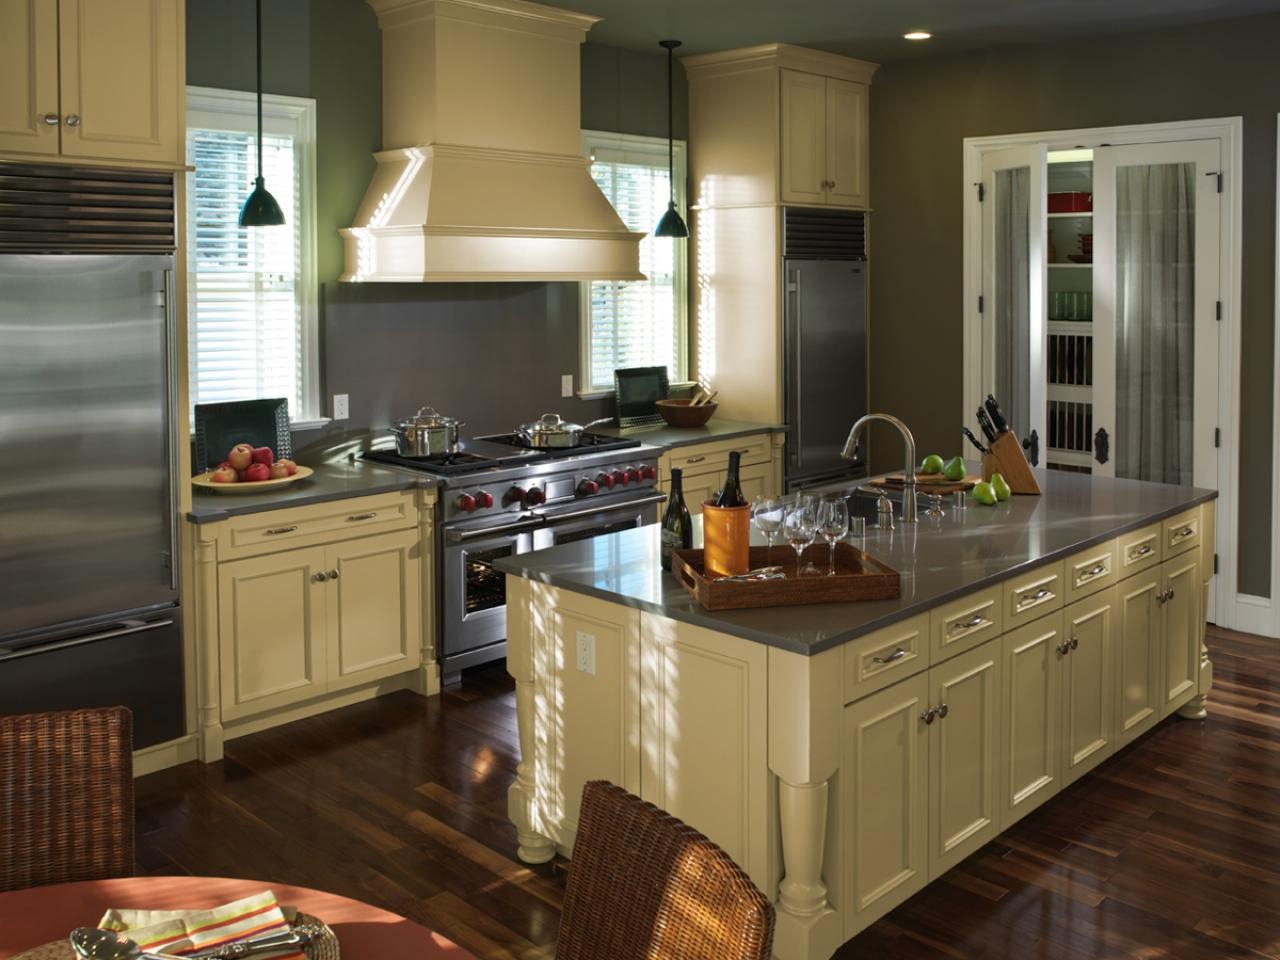 Green Painted Kitchen Cabinets green kitchen paint colors: pictures & ideas from hgtv | hgtv